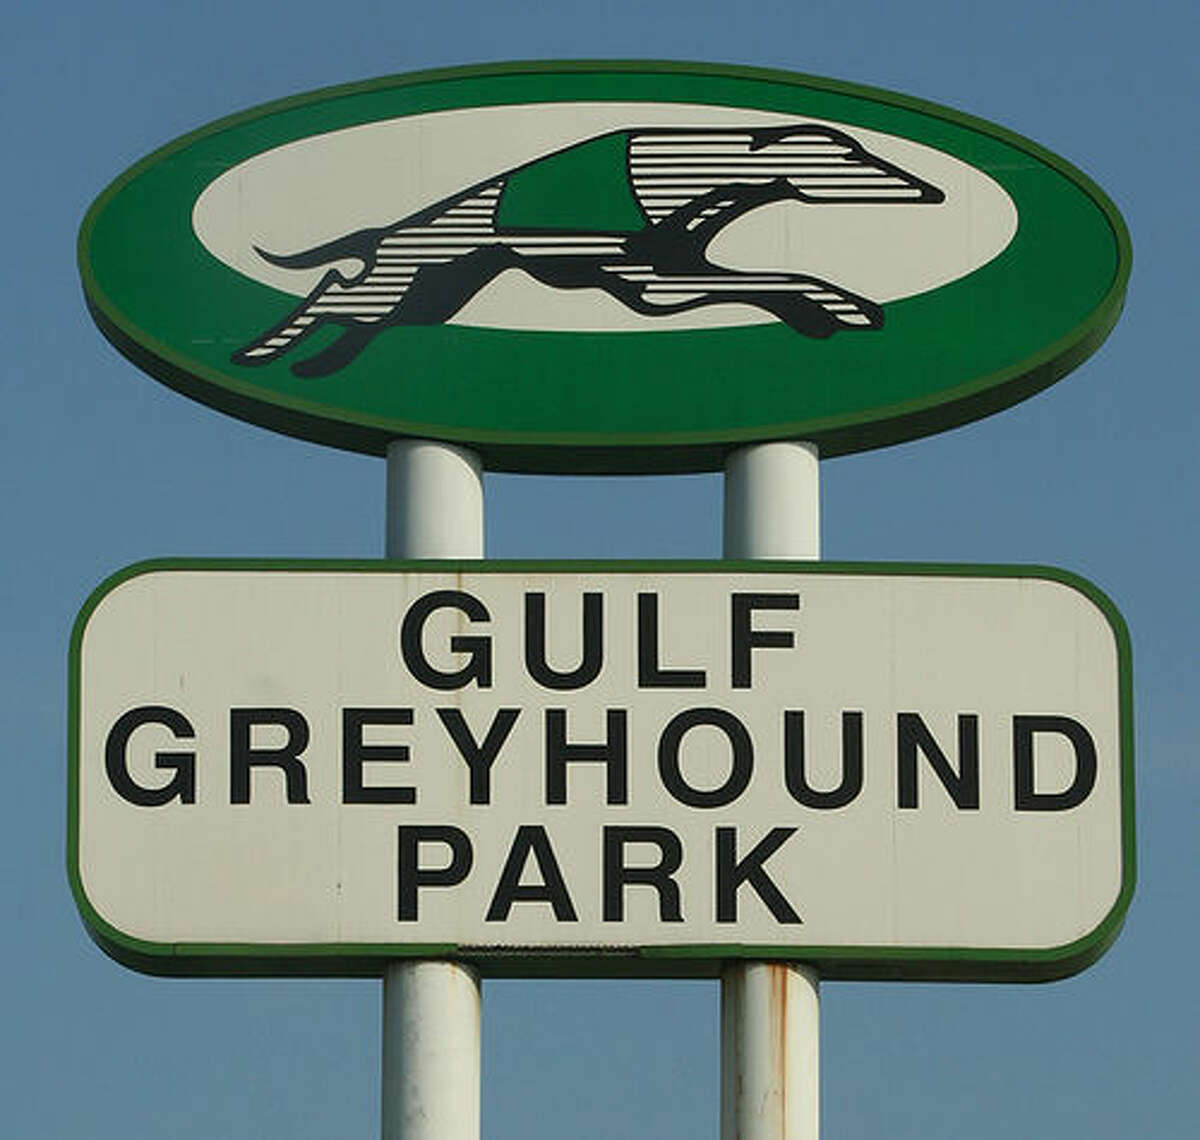 The Gulf Greyhound Park is the last dog racing course in Texas and will close at the end of the year.